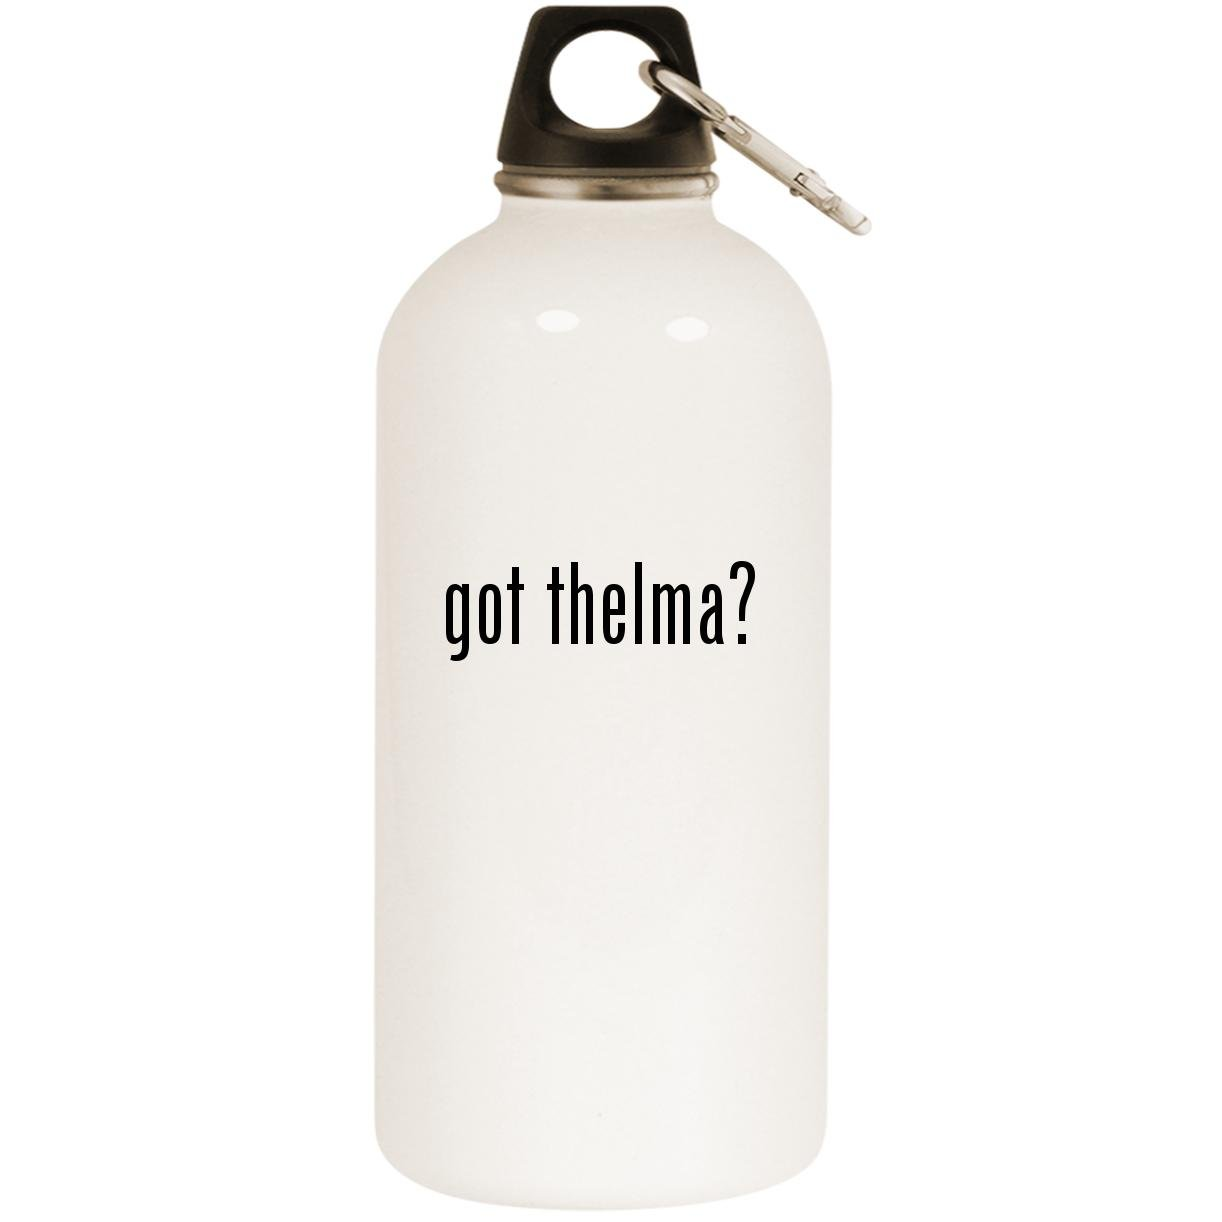 got thelma? - White 20oz Stainless Steel Water Bottle with Carabiner